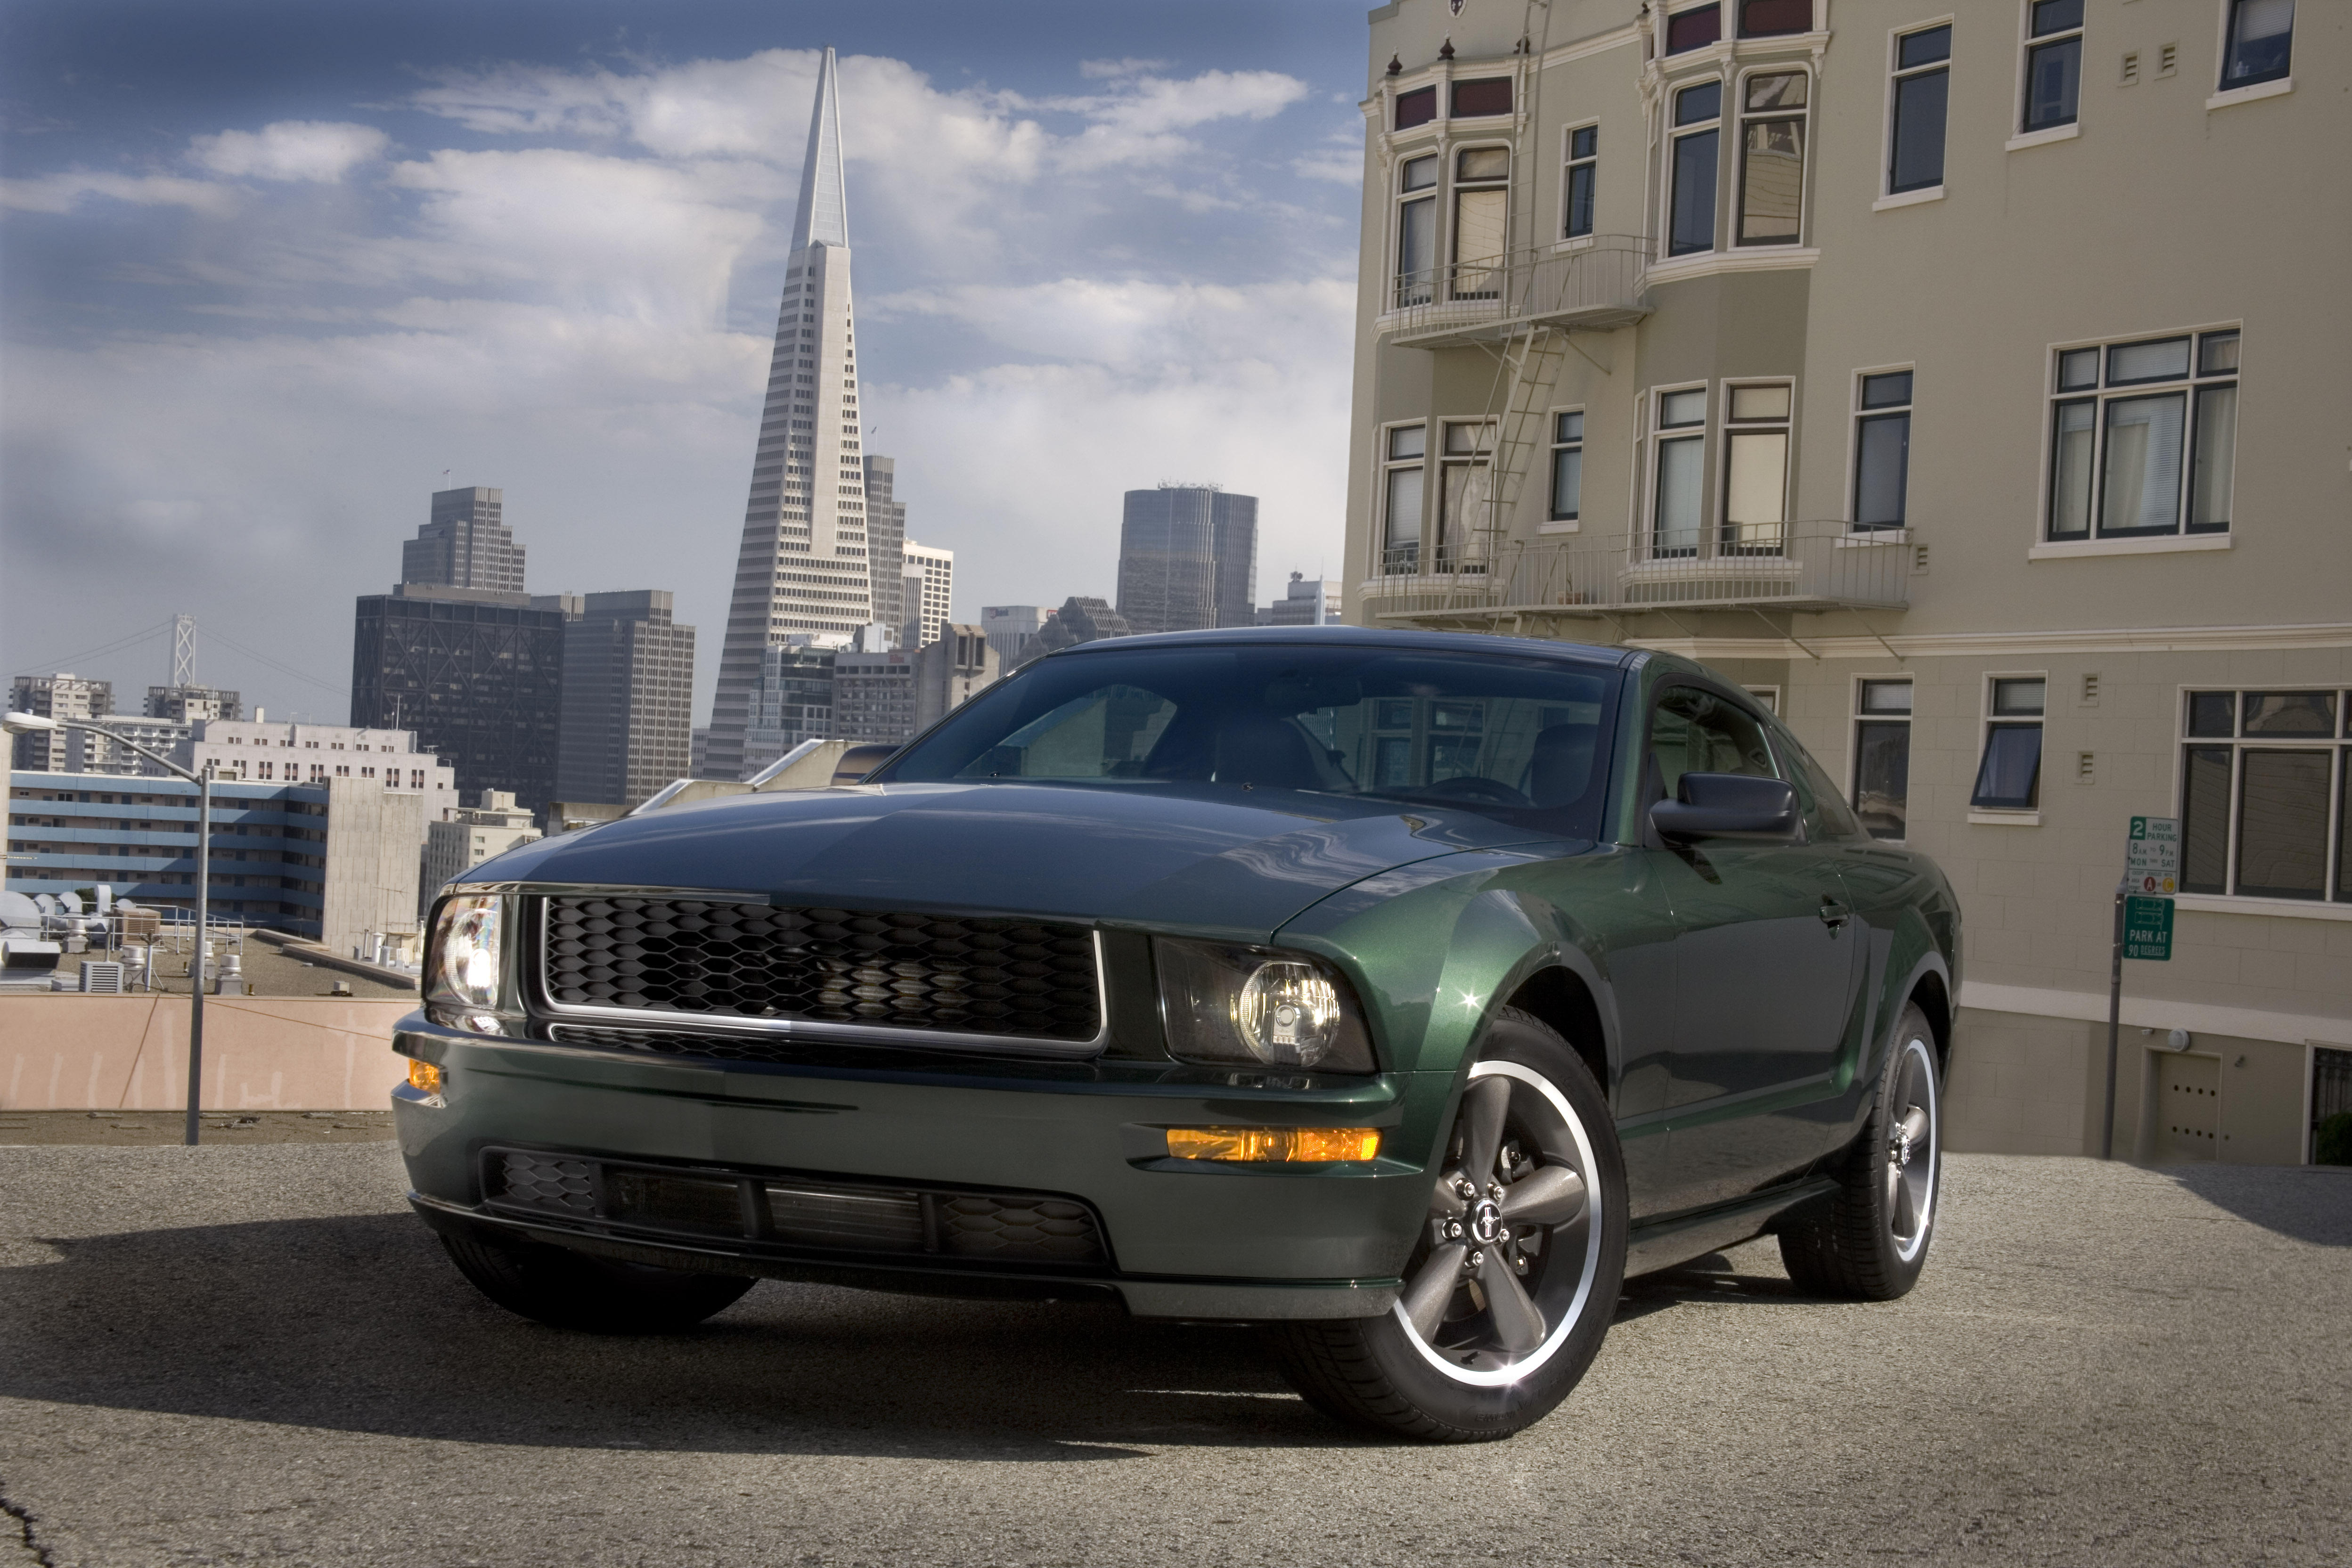 2008-ford-mustang-green-cn200801-001-1